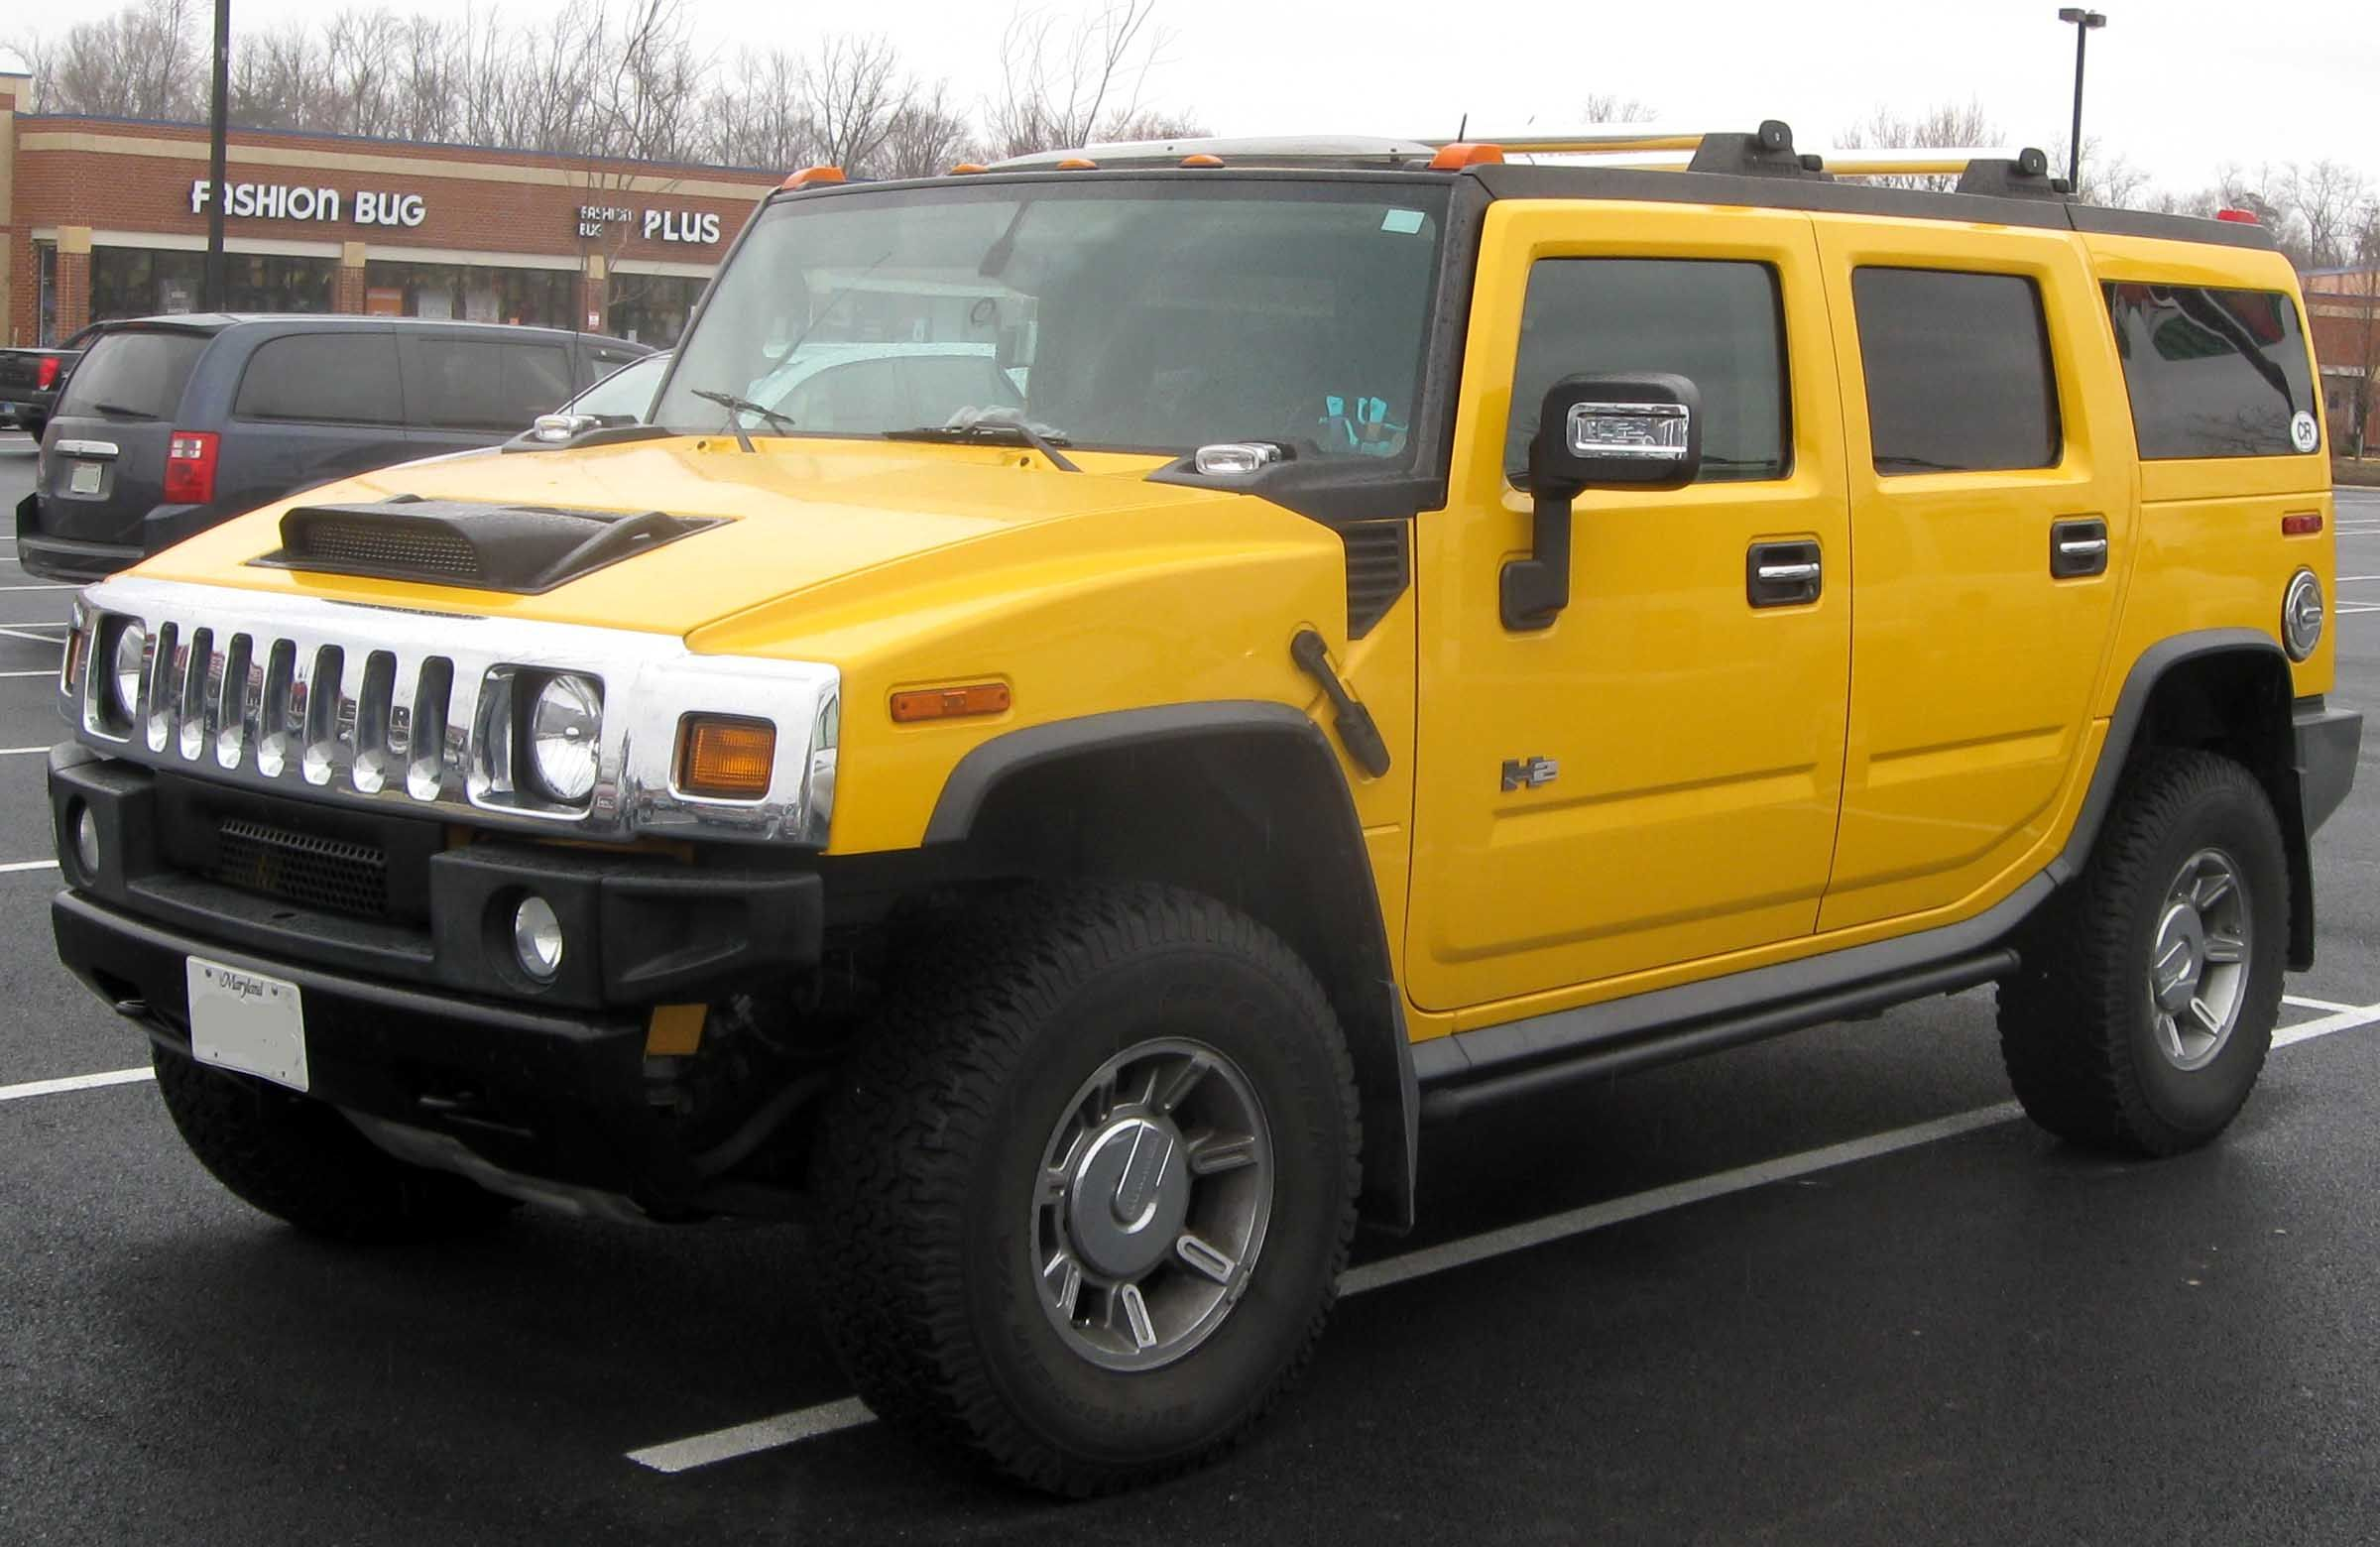 A rather hefty ride the hummer has none of the sleek characteristics that often note a sexy car its appealing brawny look marked the heyday of the big